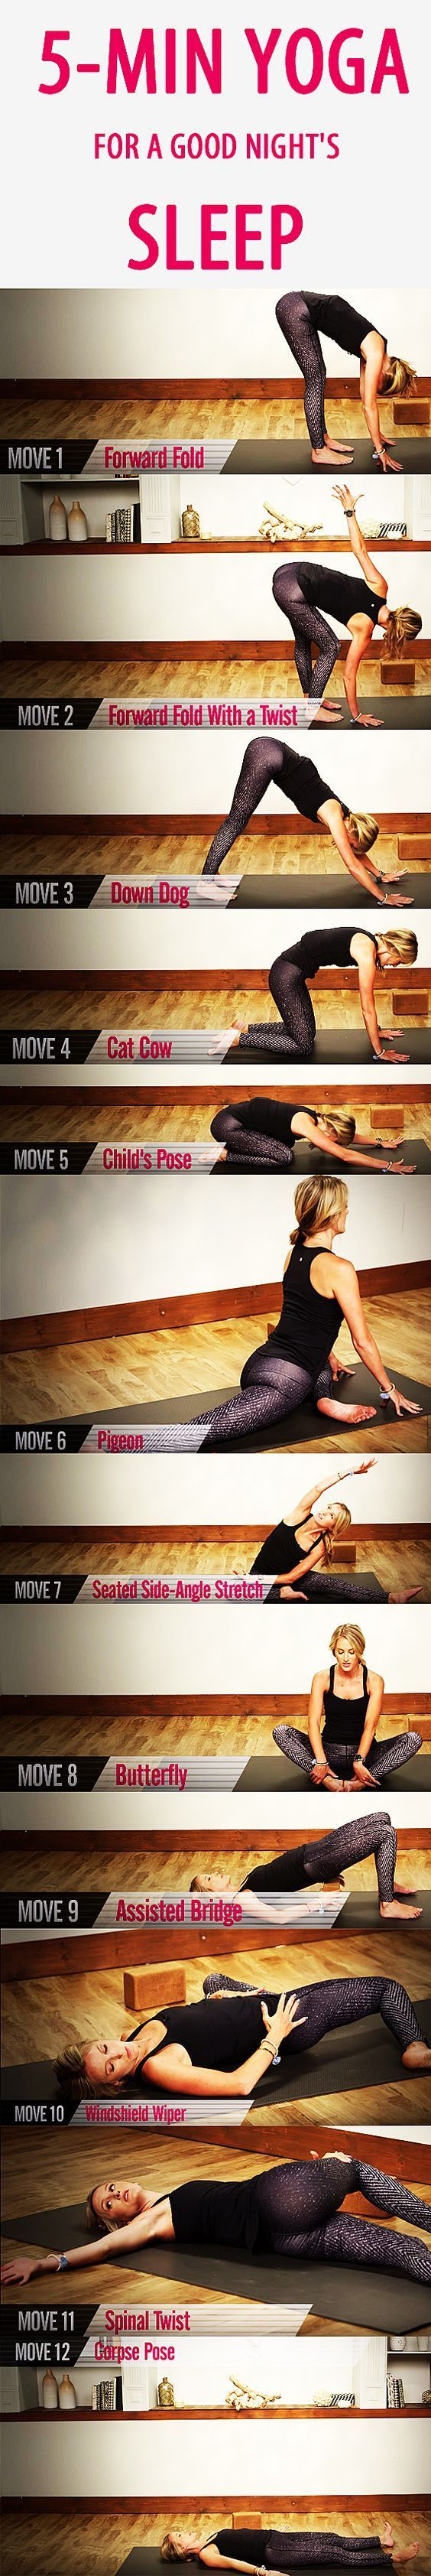 5-minute YOGA routine for a GOOD NIGHT'S SLEEP. Sometimes you have to actively u...